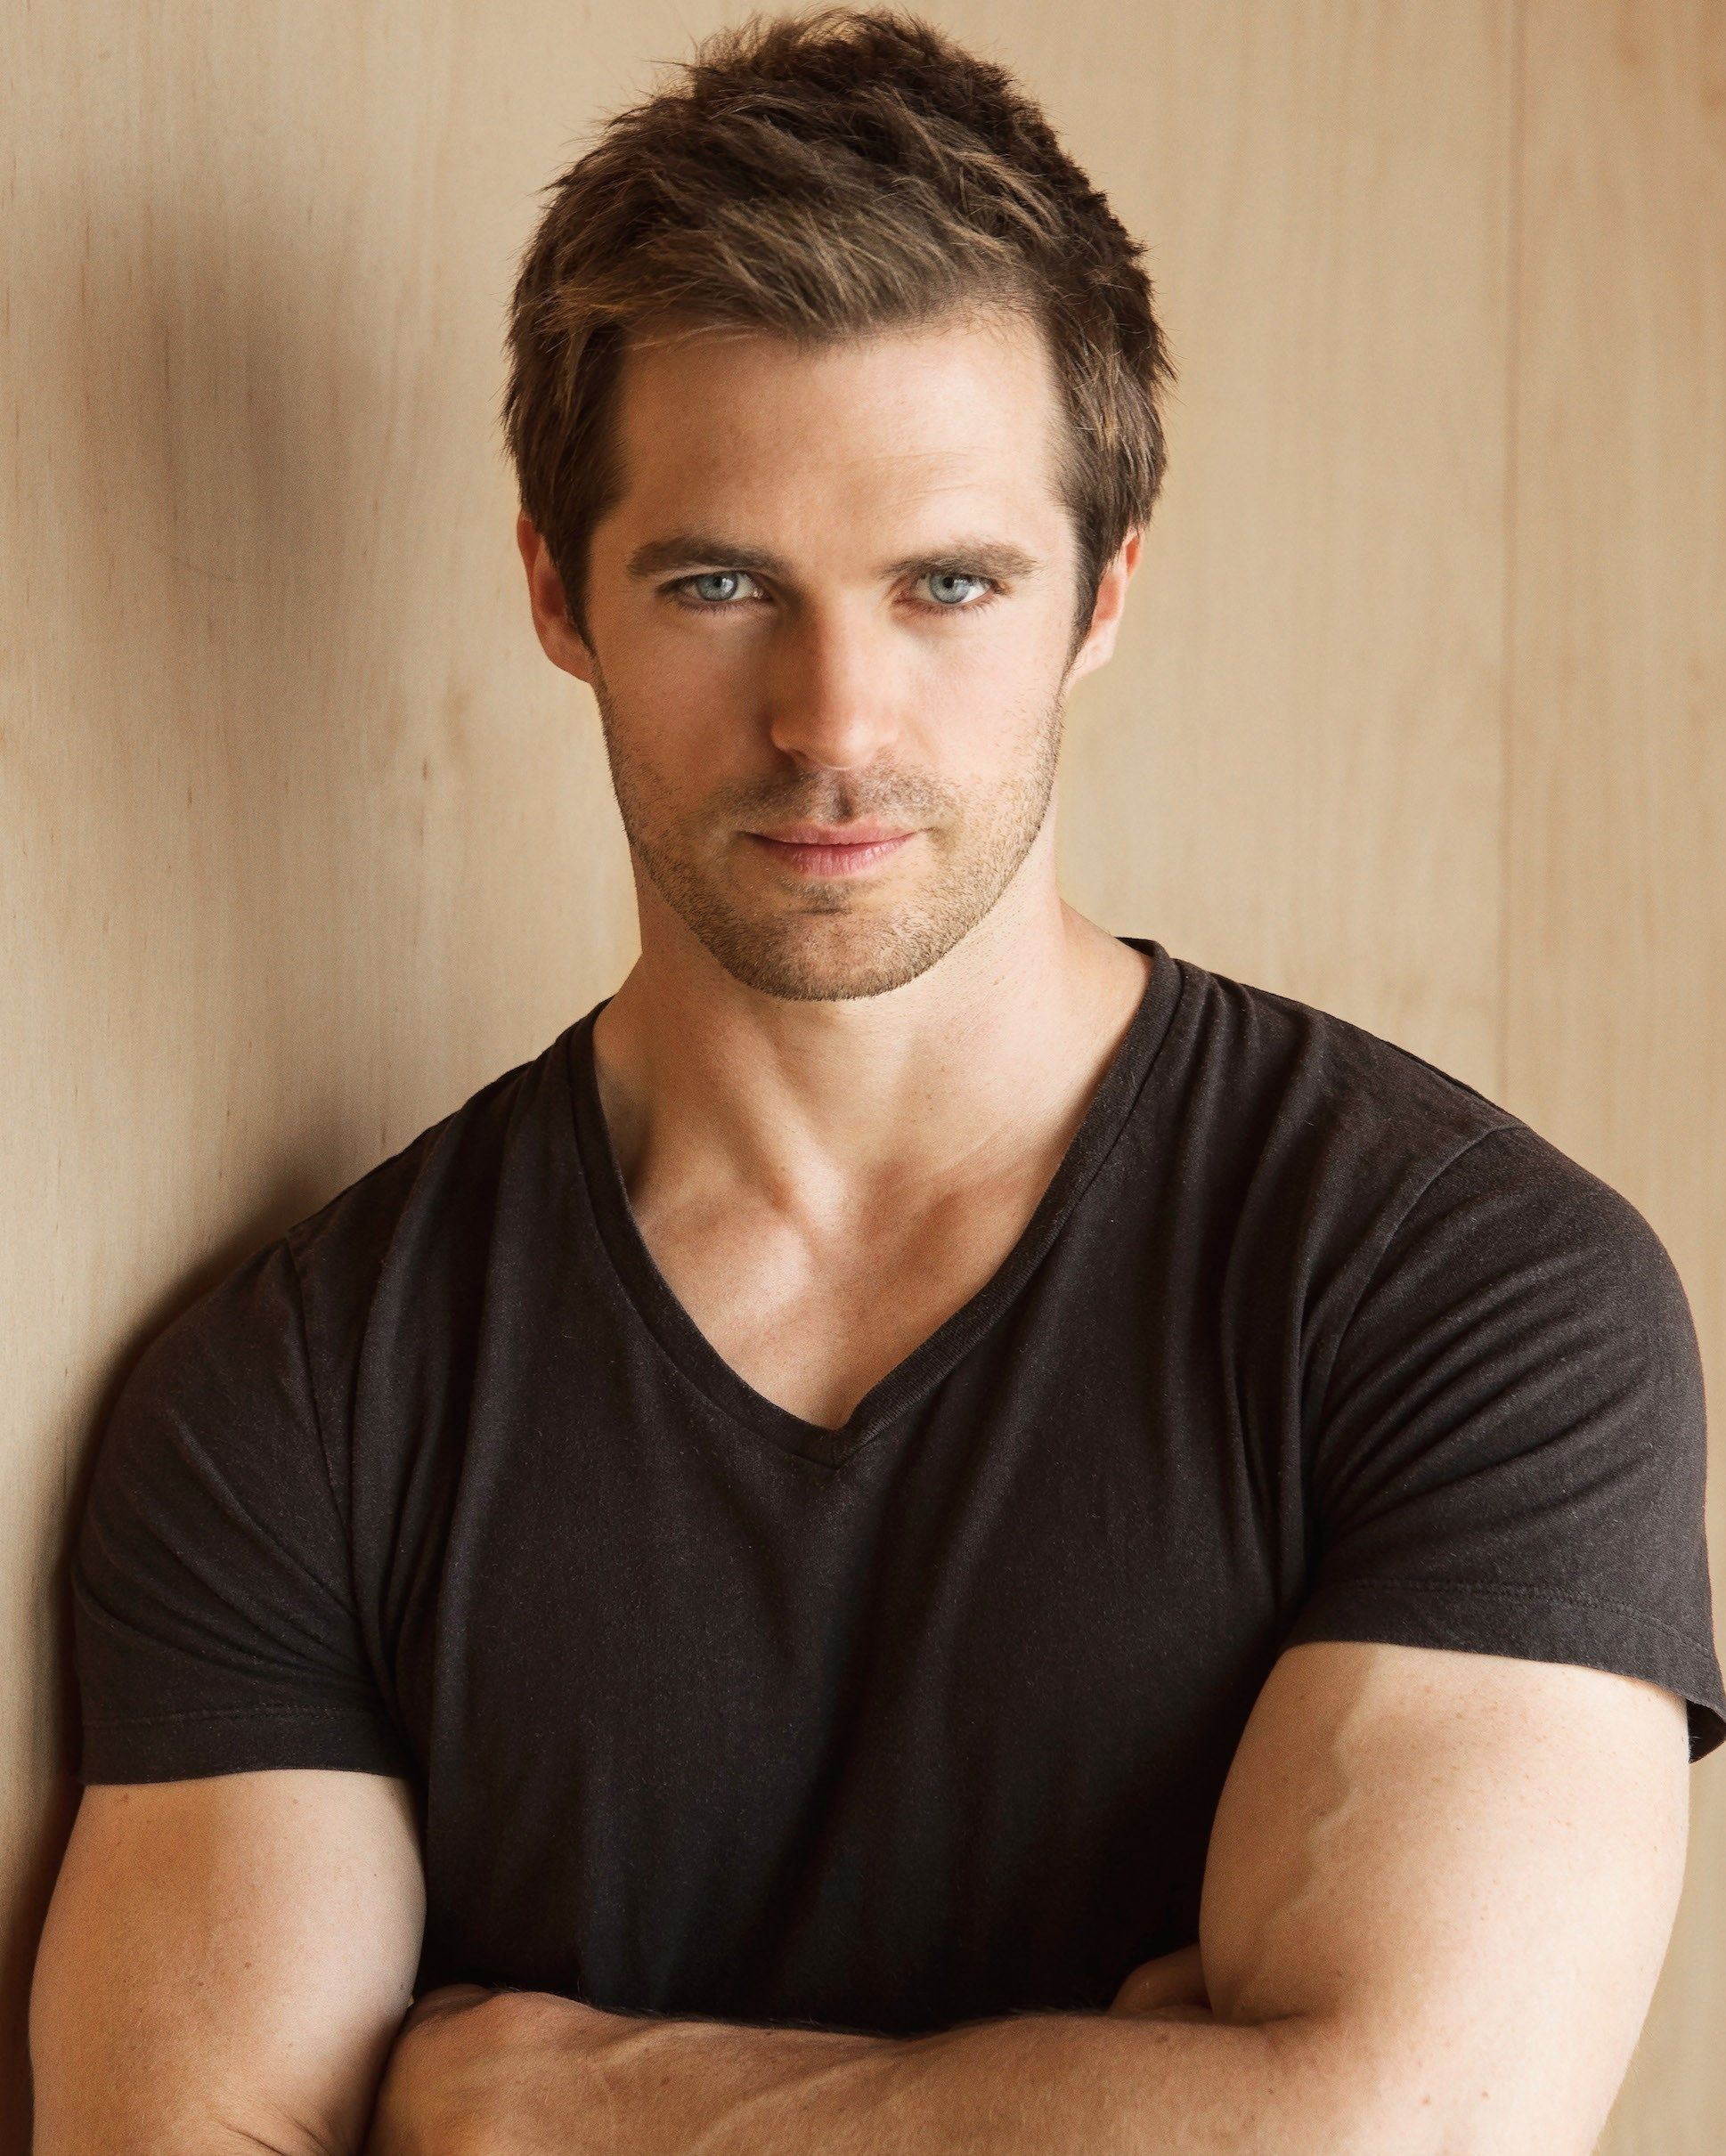 Kyle Pryor Hottest Guy Ever Home And Away Hottest Male Celebrities